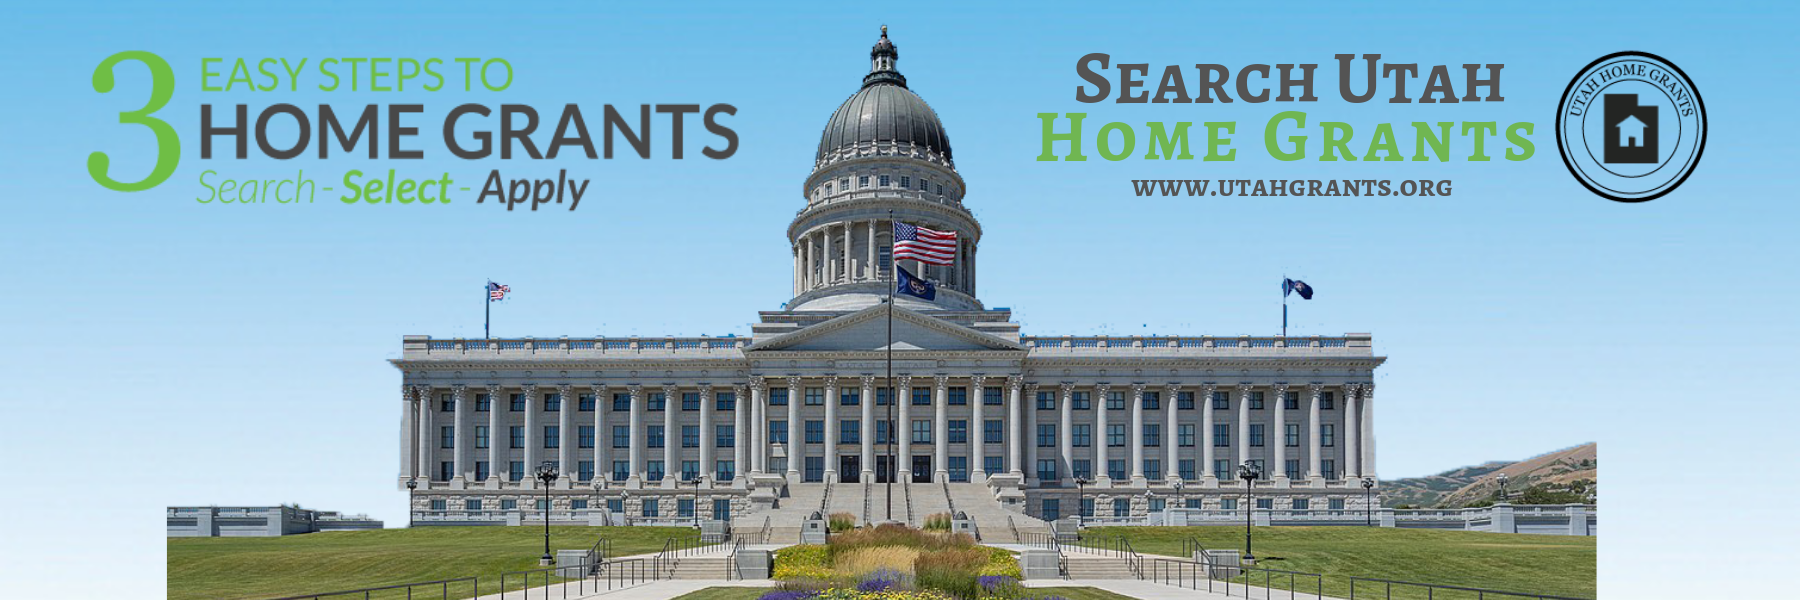 Search Utah Home Grants (1).png